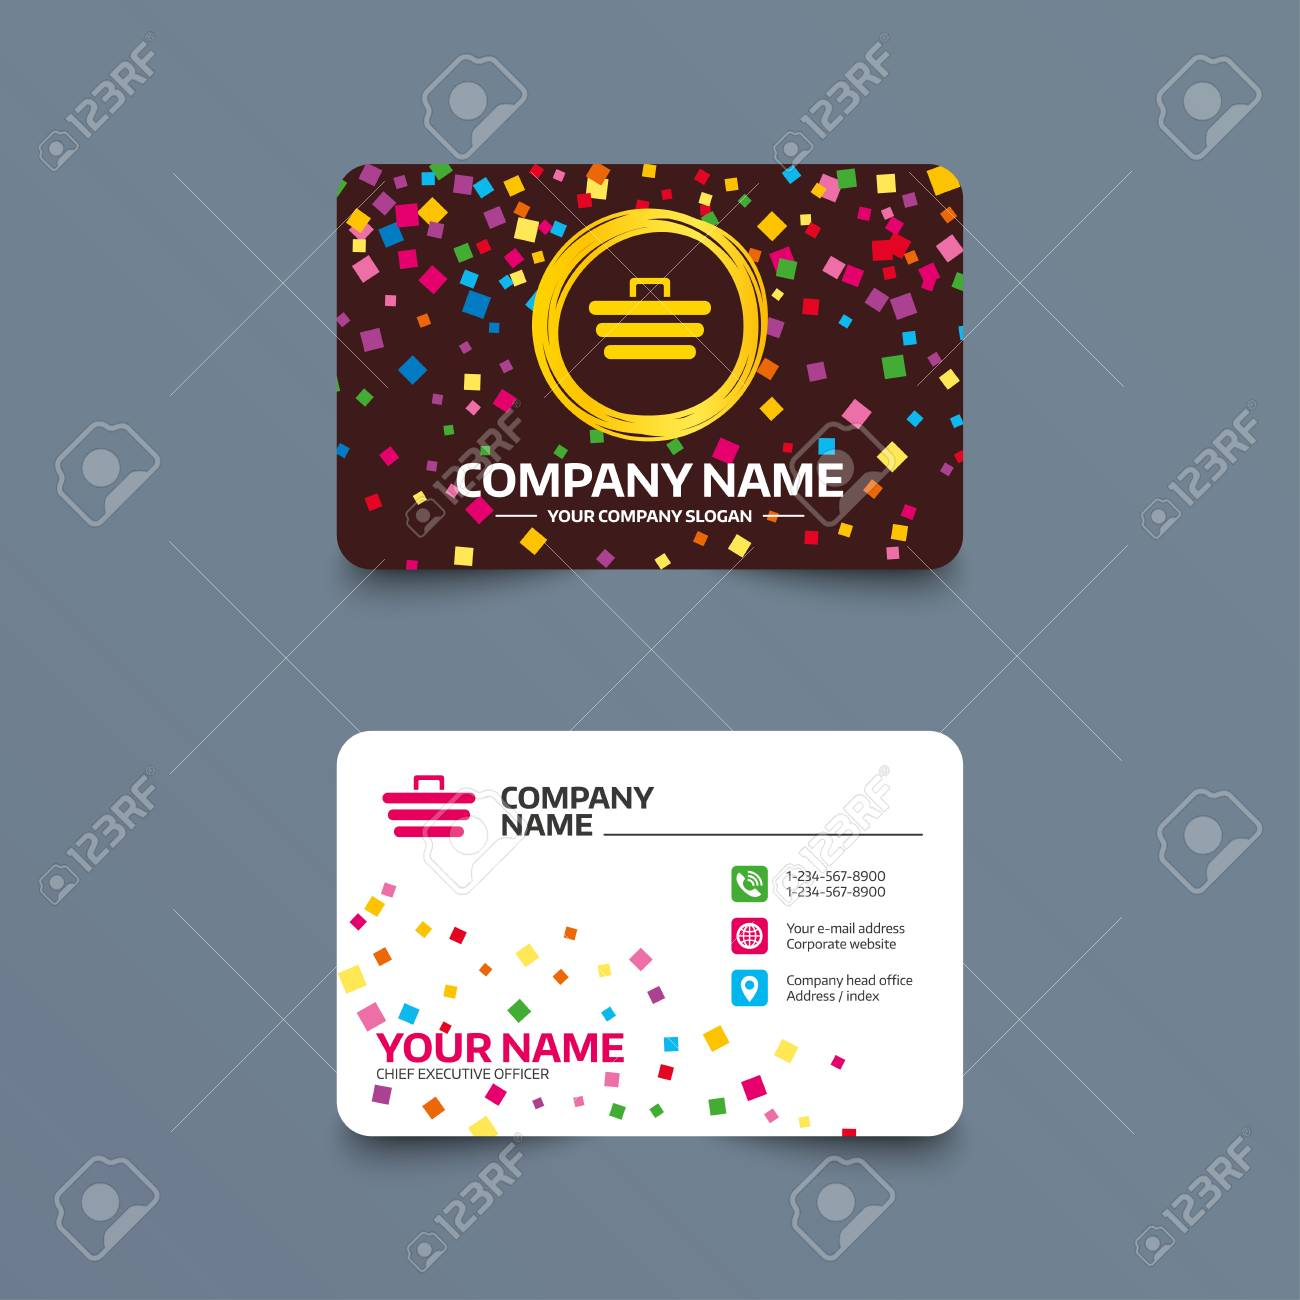 Business Card Template With Confetti Pieces Shopping Cart Sign Royalty Free Cliparts Vectors And Stock Illustration Image 75584387